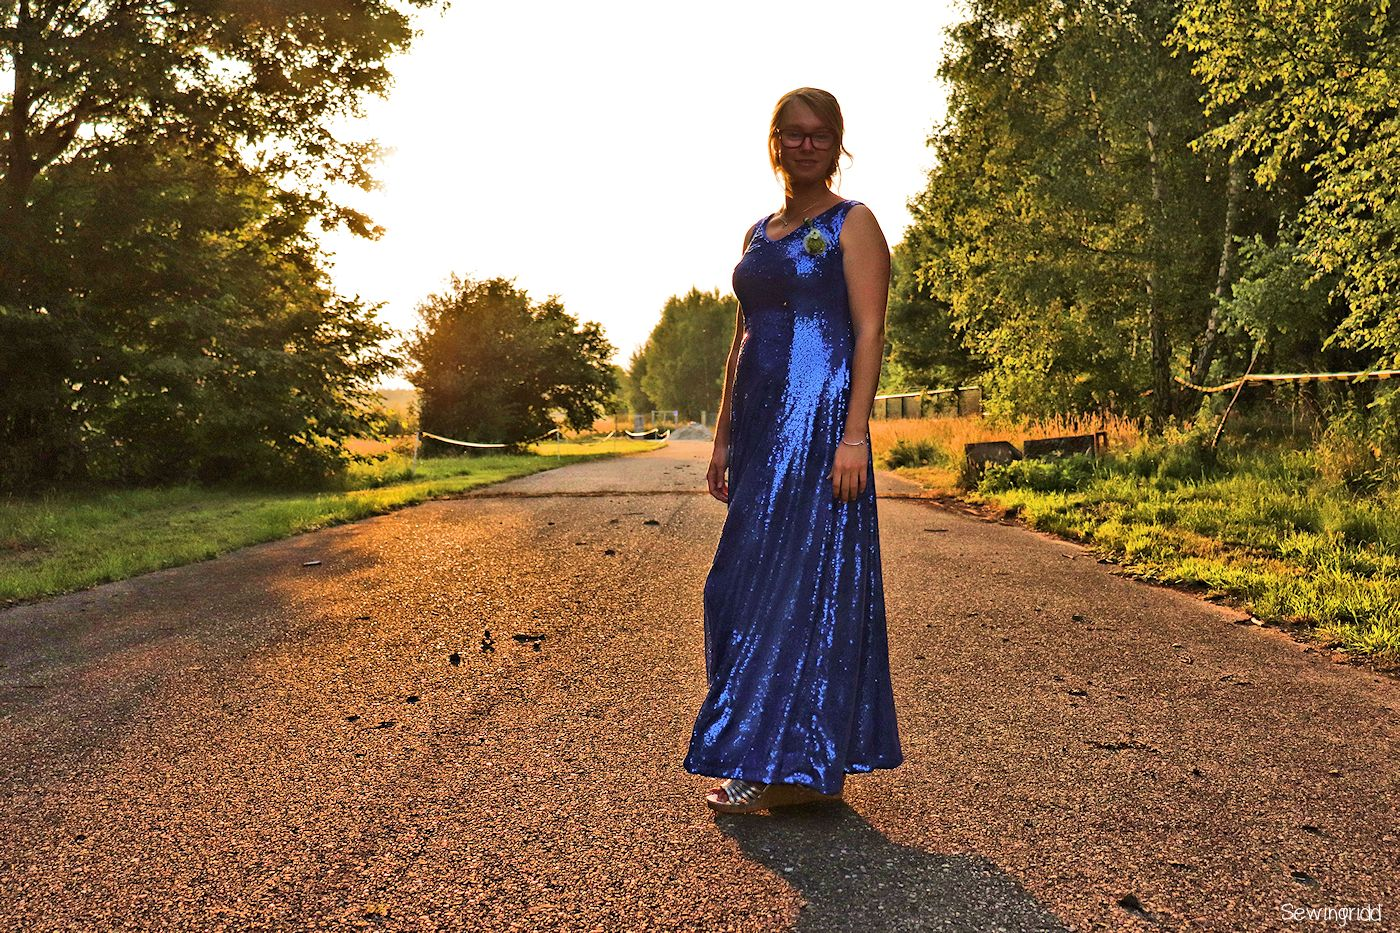 Butterick B6146 - Sequined gown stitched by Sewingridd